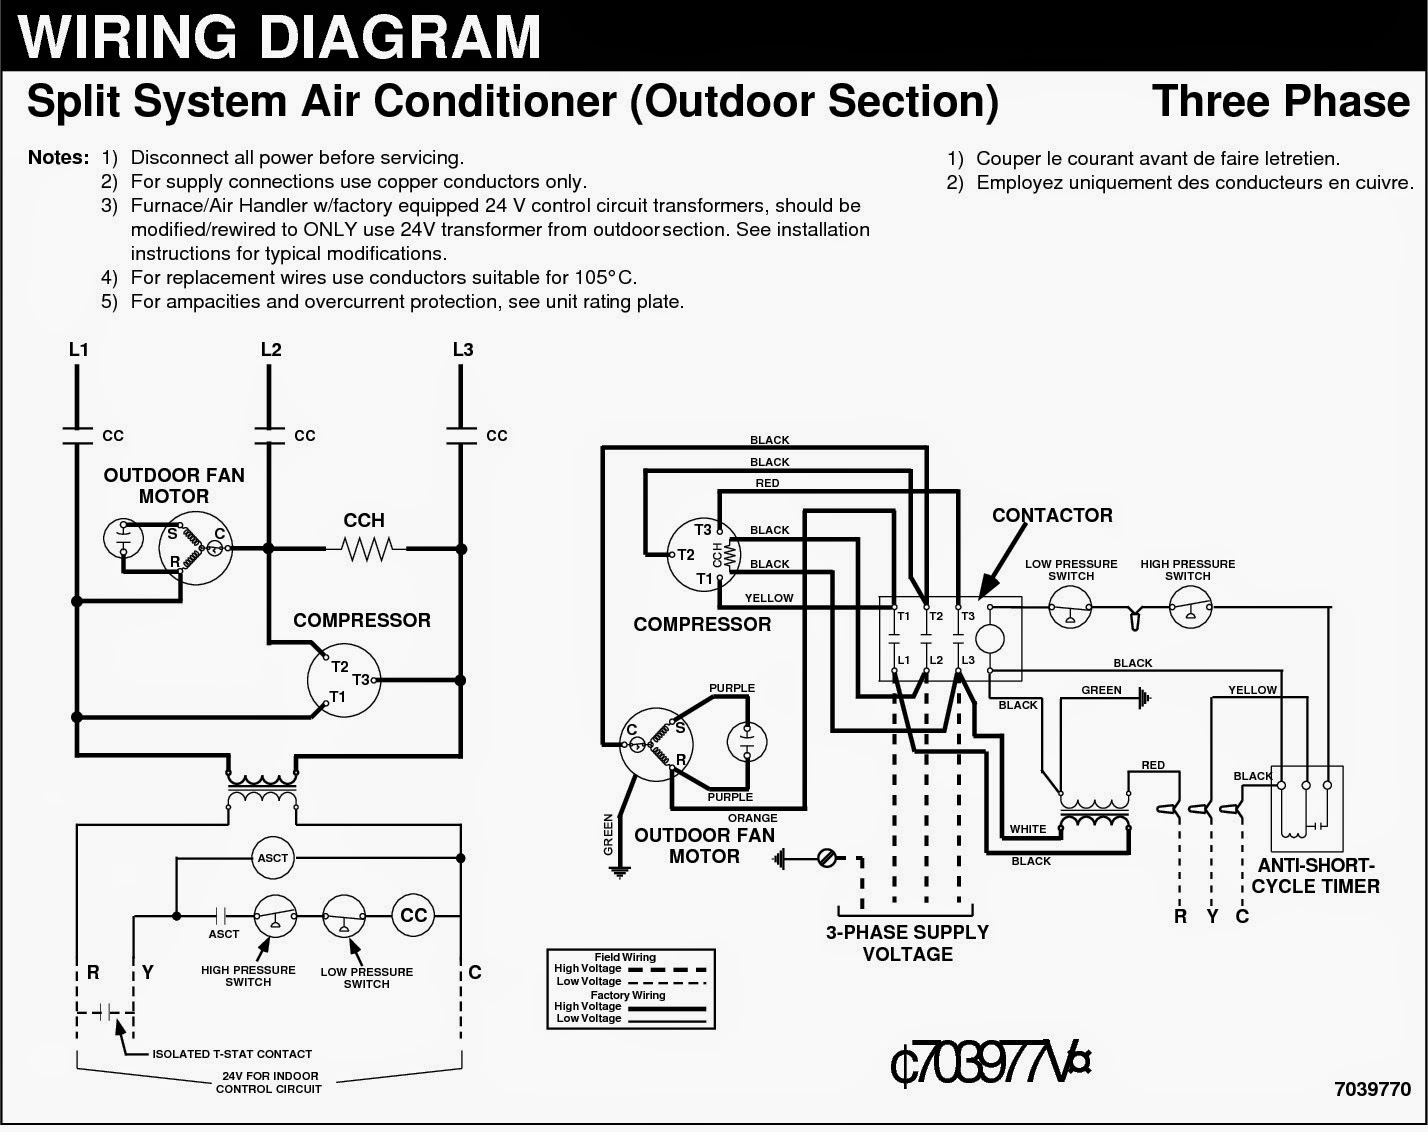 3+phase electrical wiring diagrams for air conditioning systems part two samsung air conditioner wiring diagram at panicattacktreatment.co